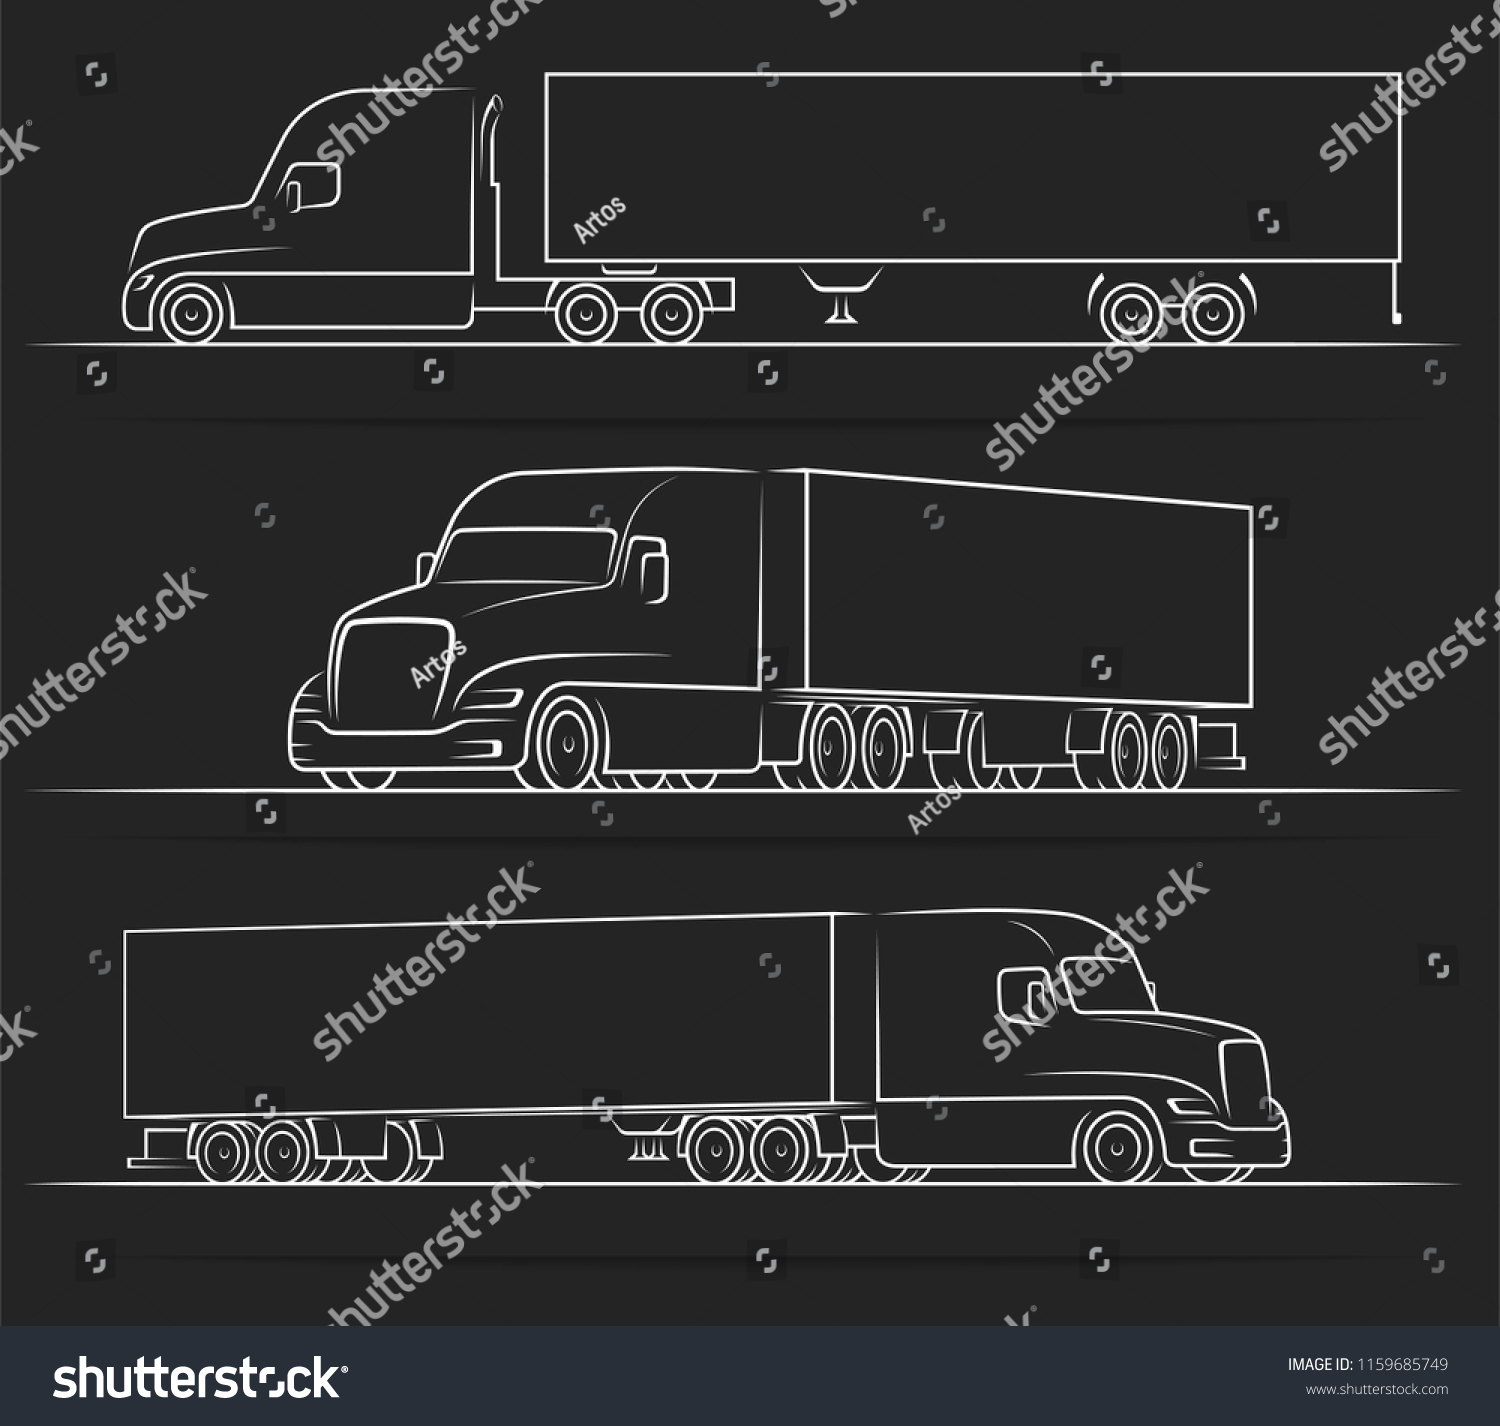 hight resolution of american road train silhouettes outlines contours stock vector semi trailer wiring diagram semi truck diagram views